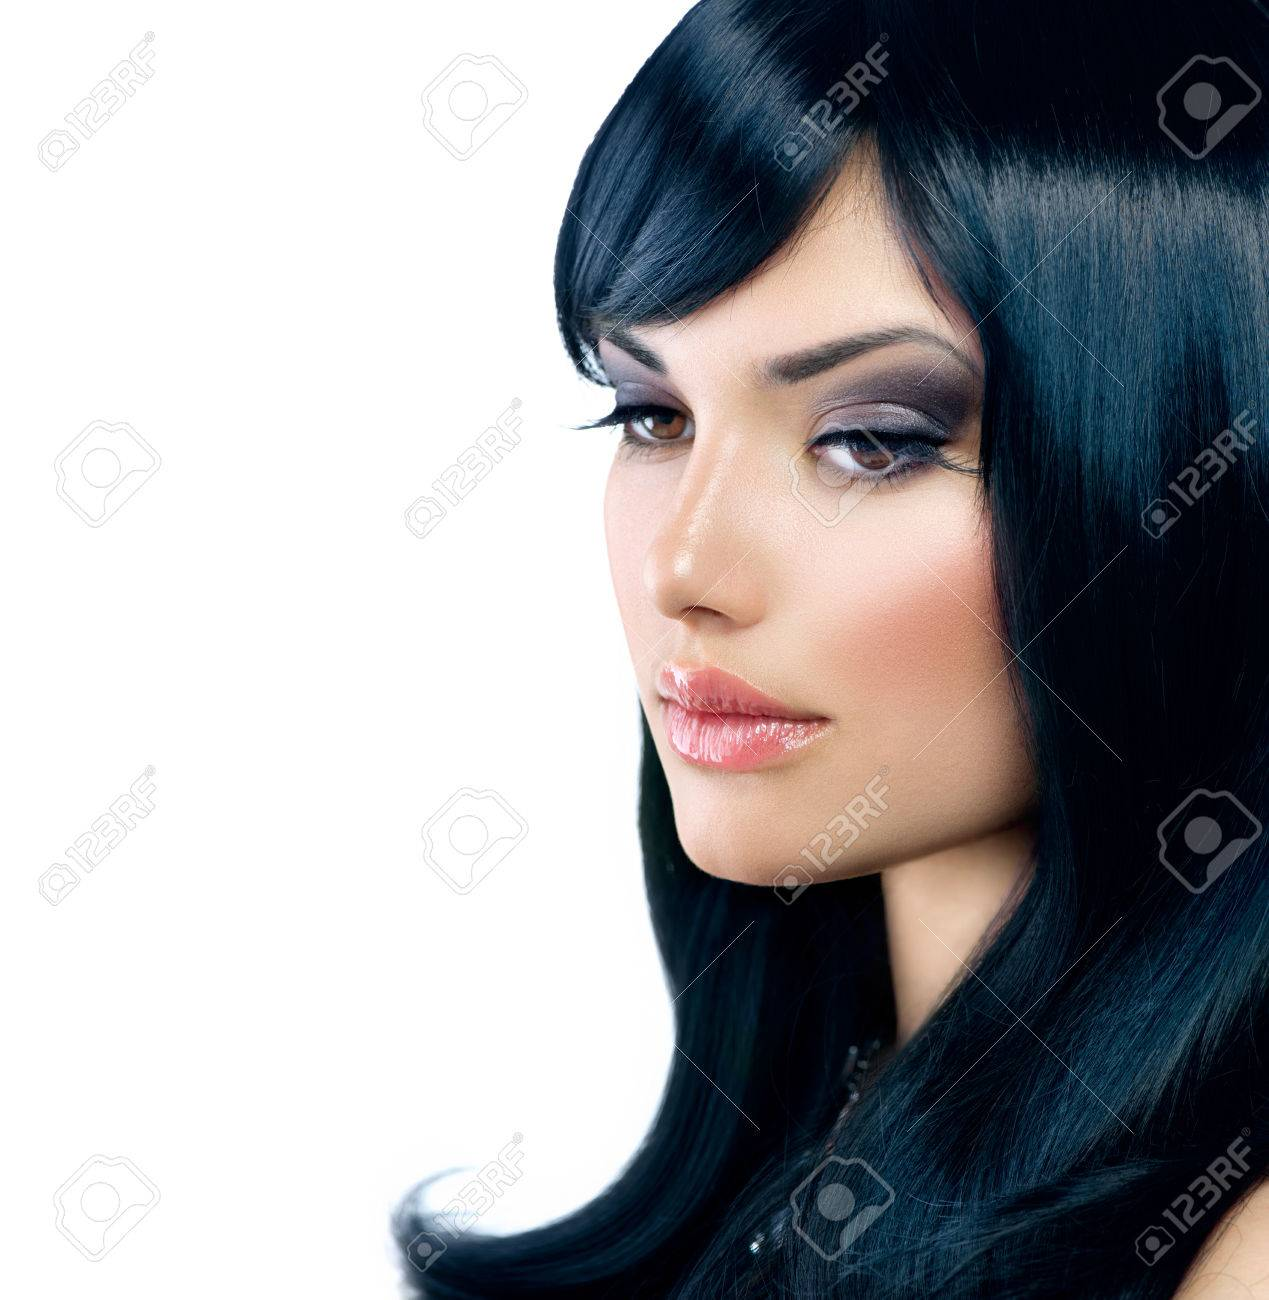 Beautiful Brunette Girl  Healthy Long Black Hair Stock Photo - 23736094